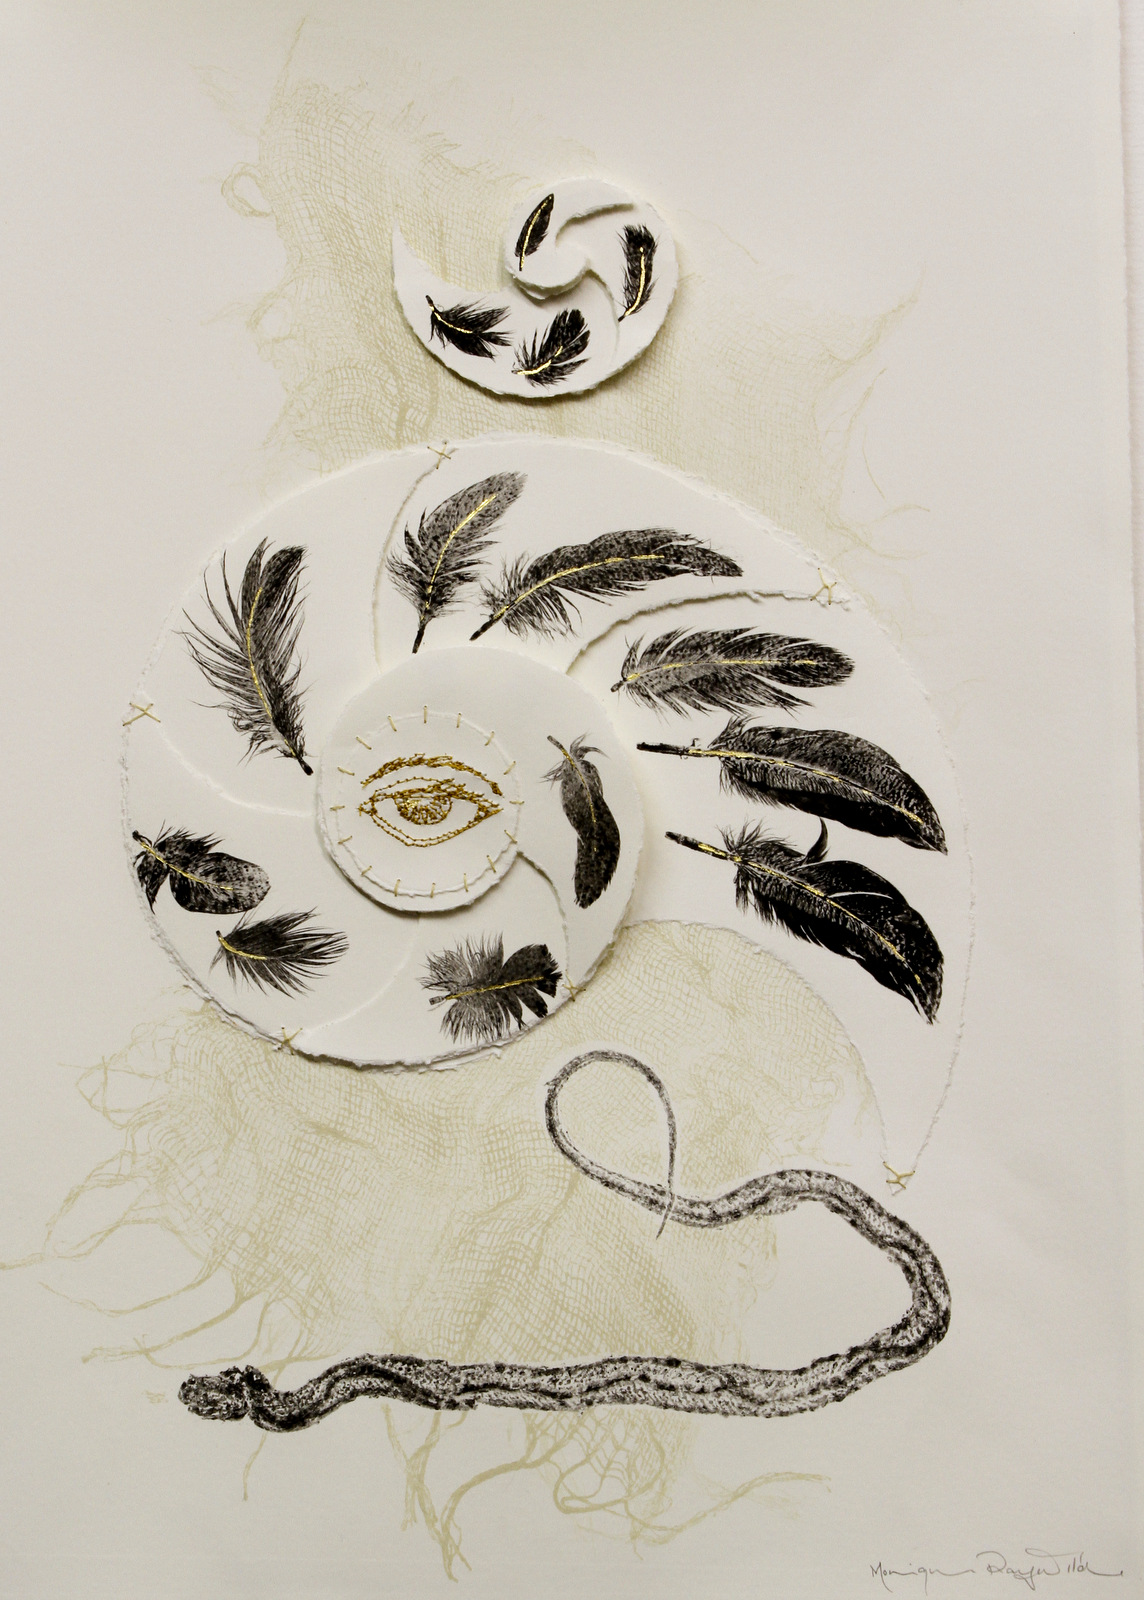 Feather, snake and gauze monotype with torn paper spiral, stitching and metal leaf.